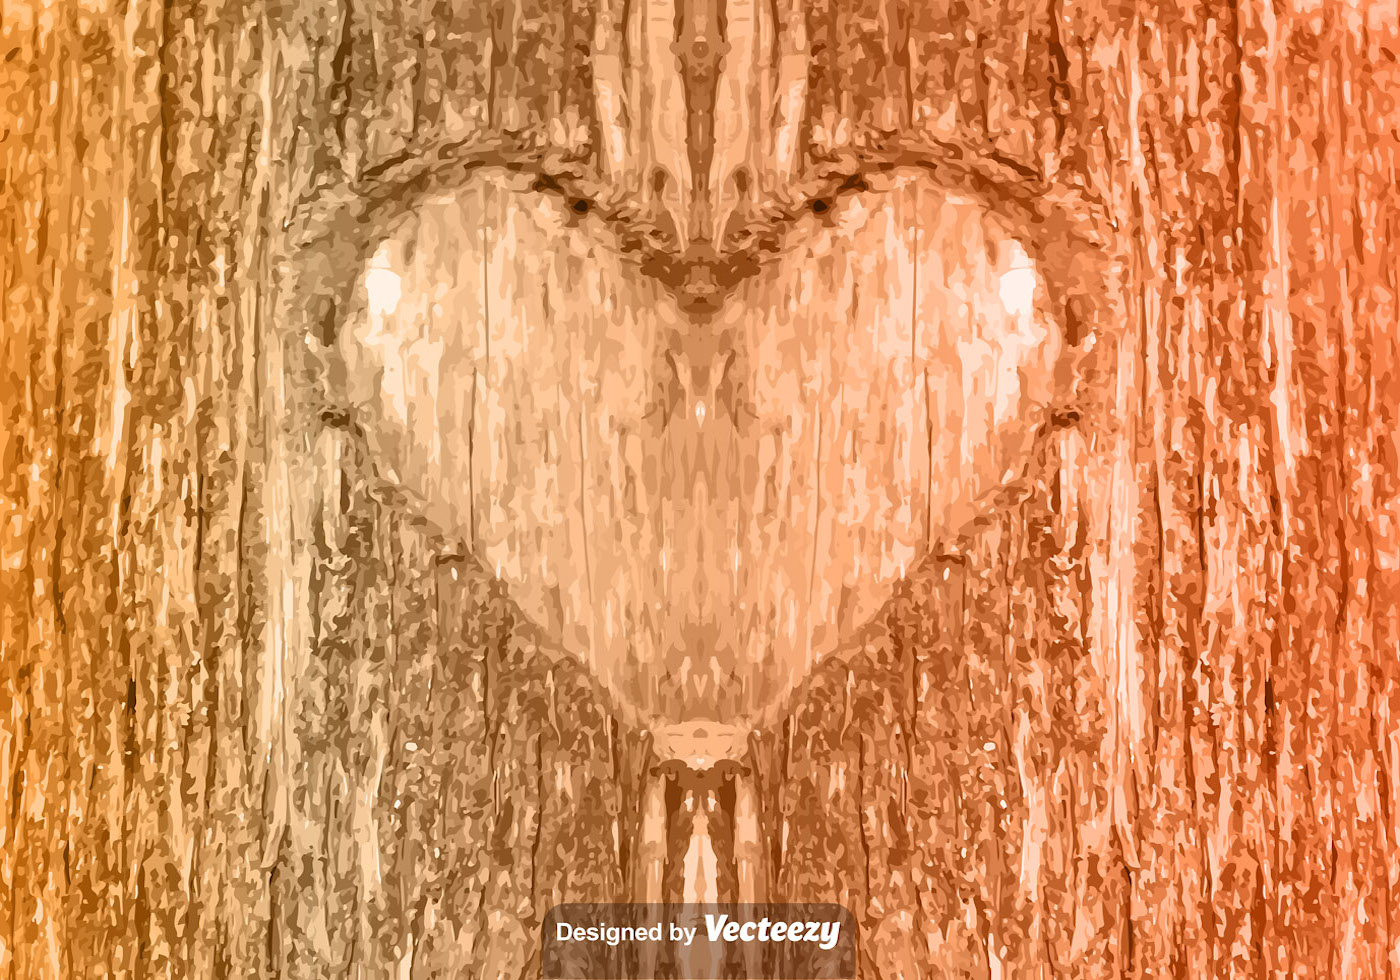 Heart Carved Tree Free Vector Art.